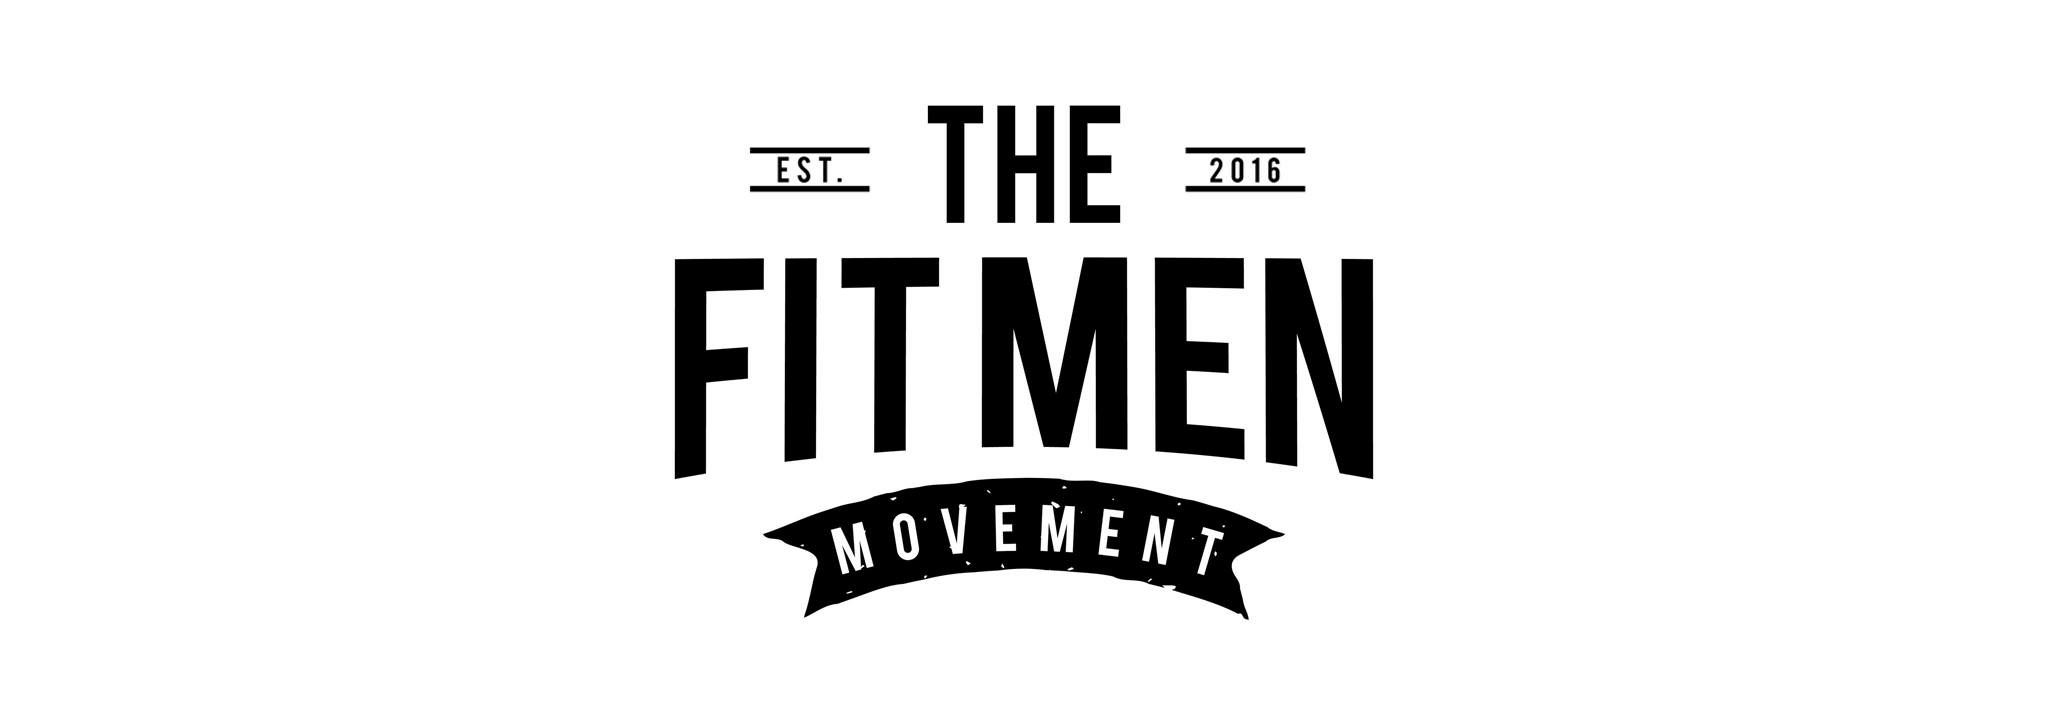 Fit Men Movement